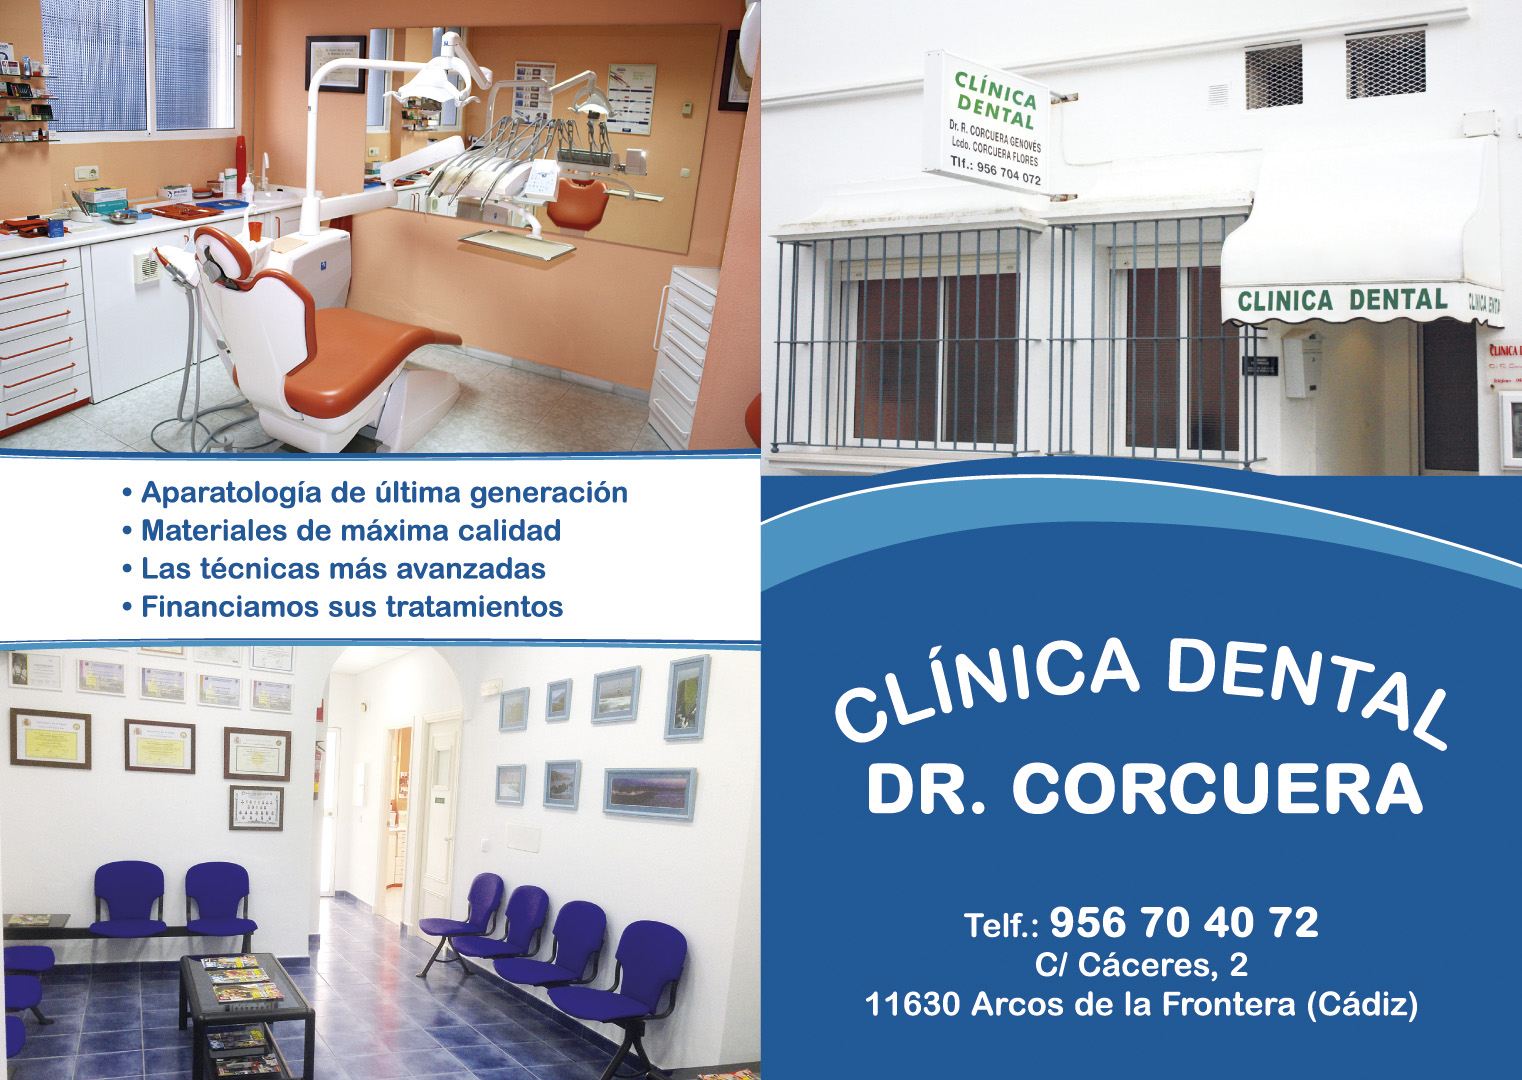 Clínica Dental Doctor Corcuera